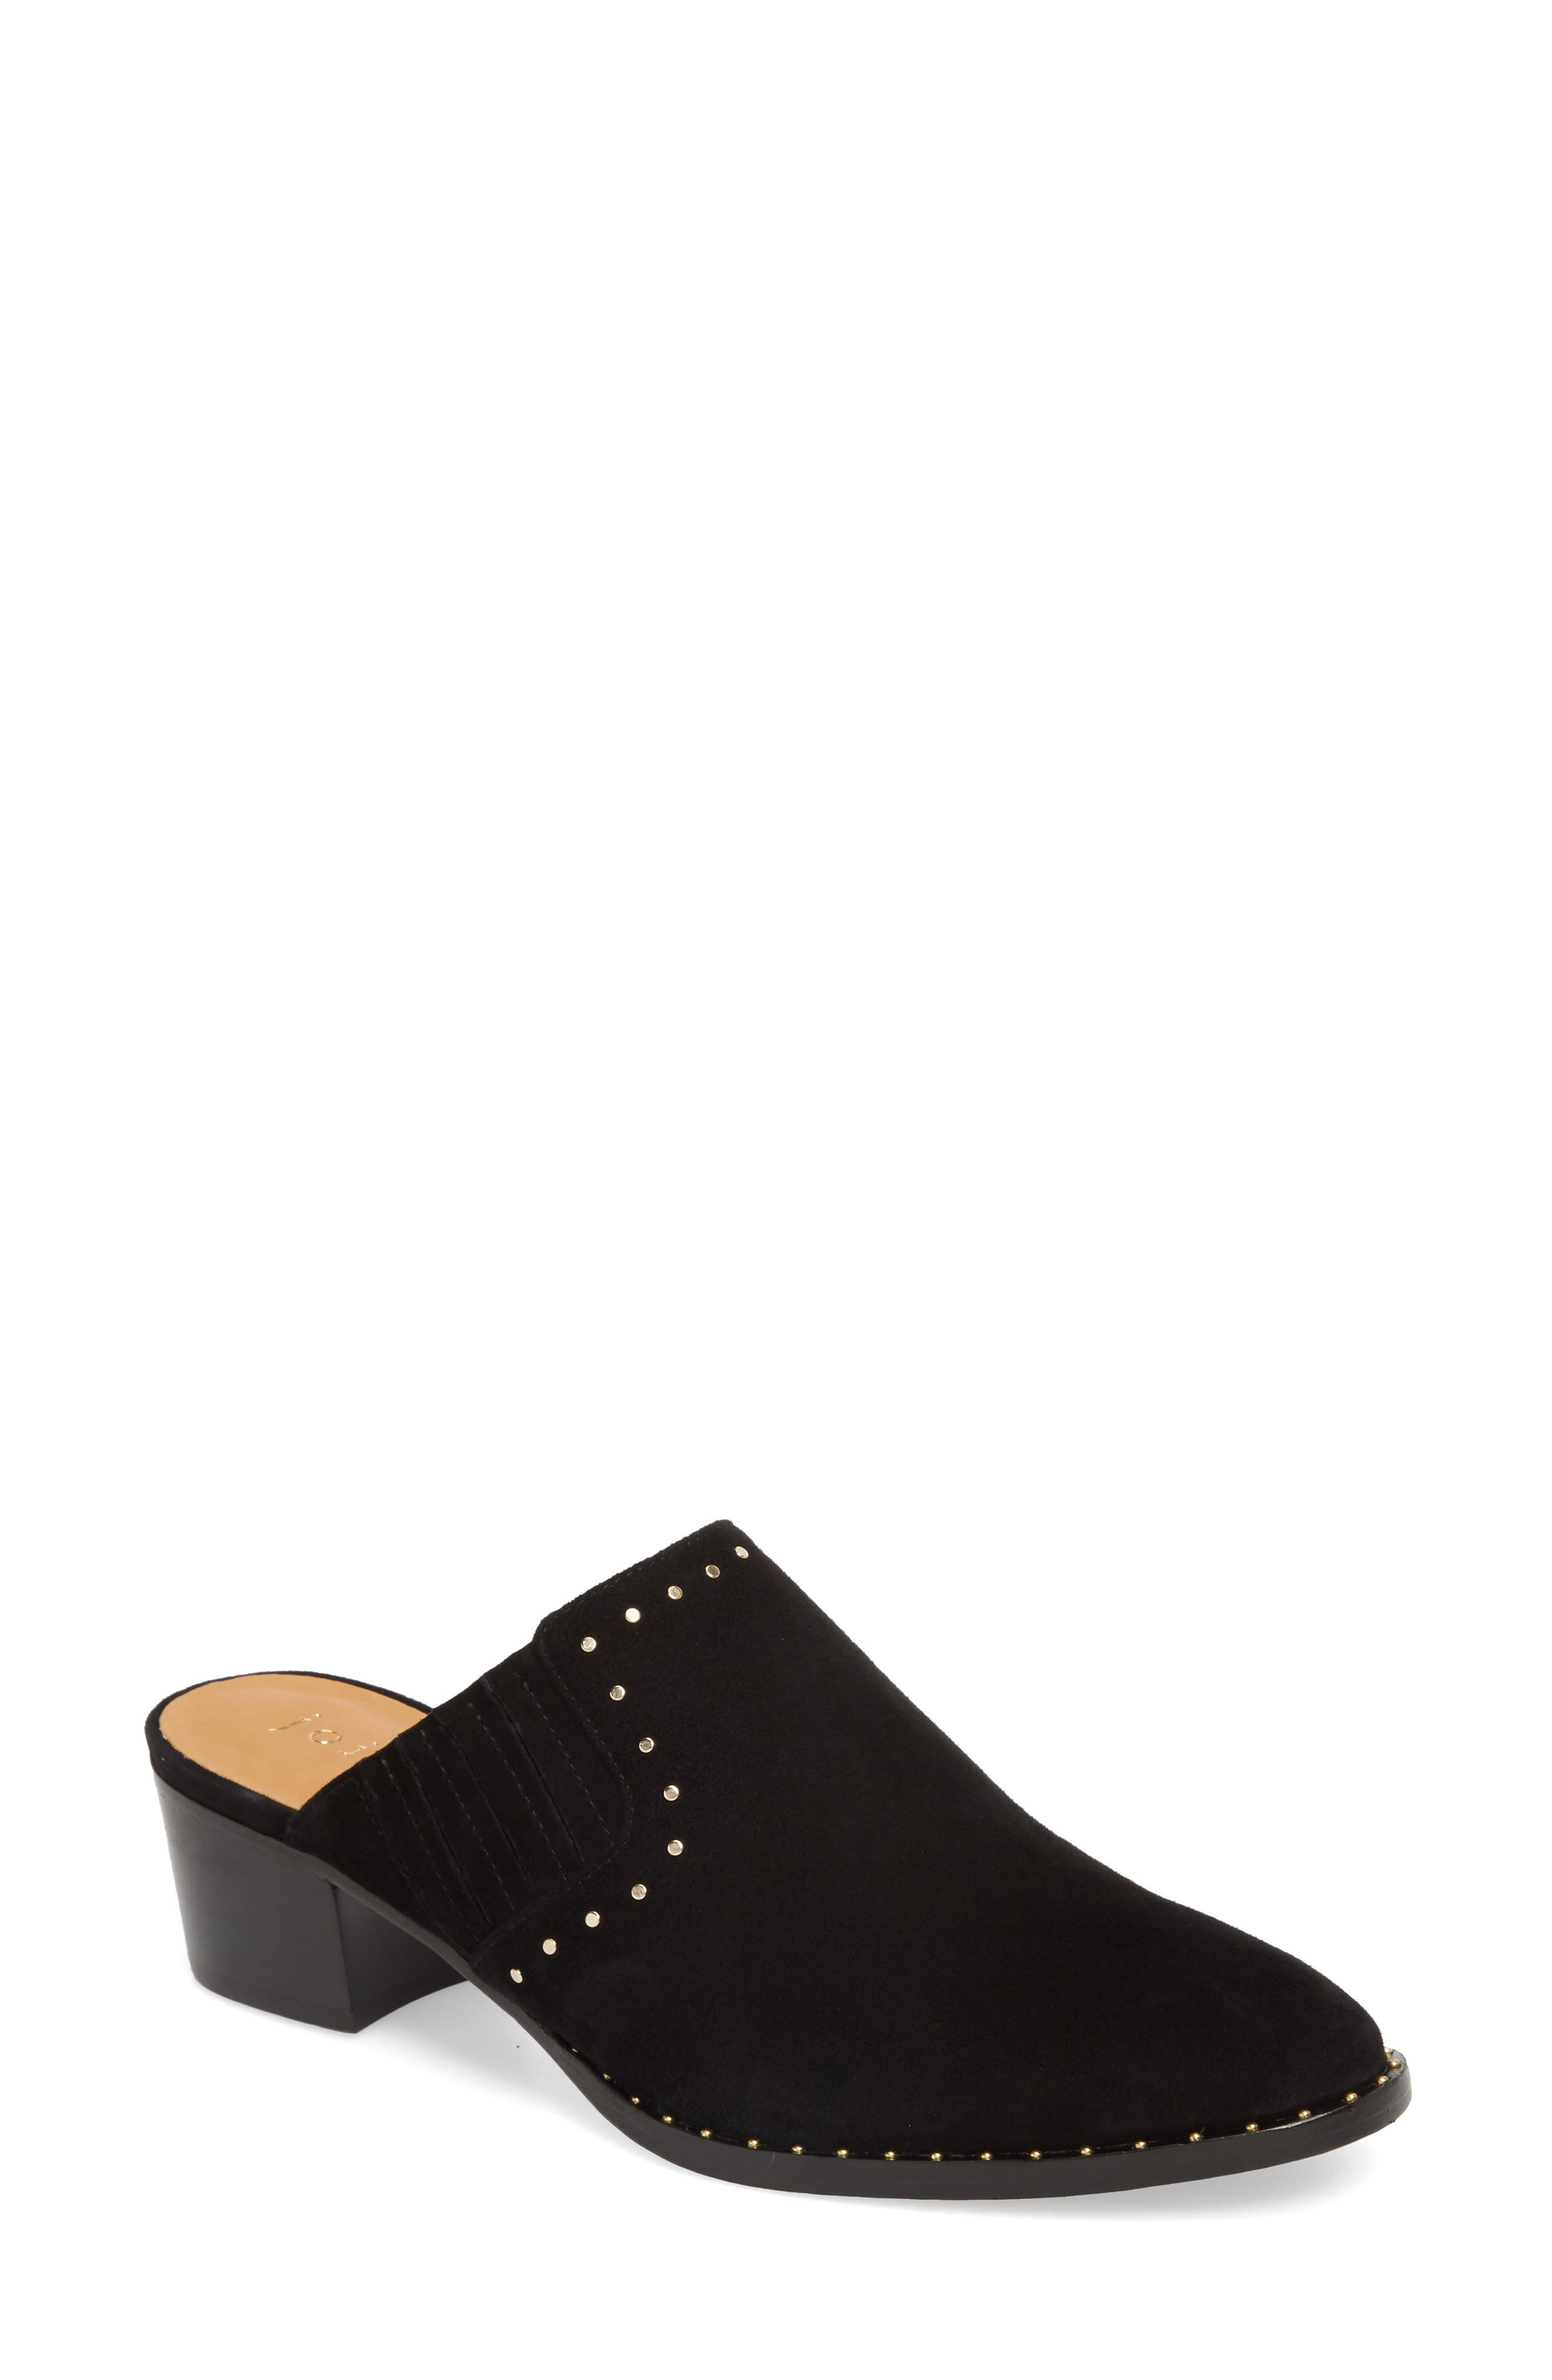 Fayla Studded Mule,                         Main,                         color, Nero